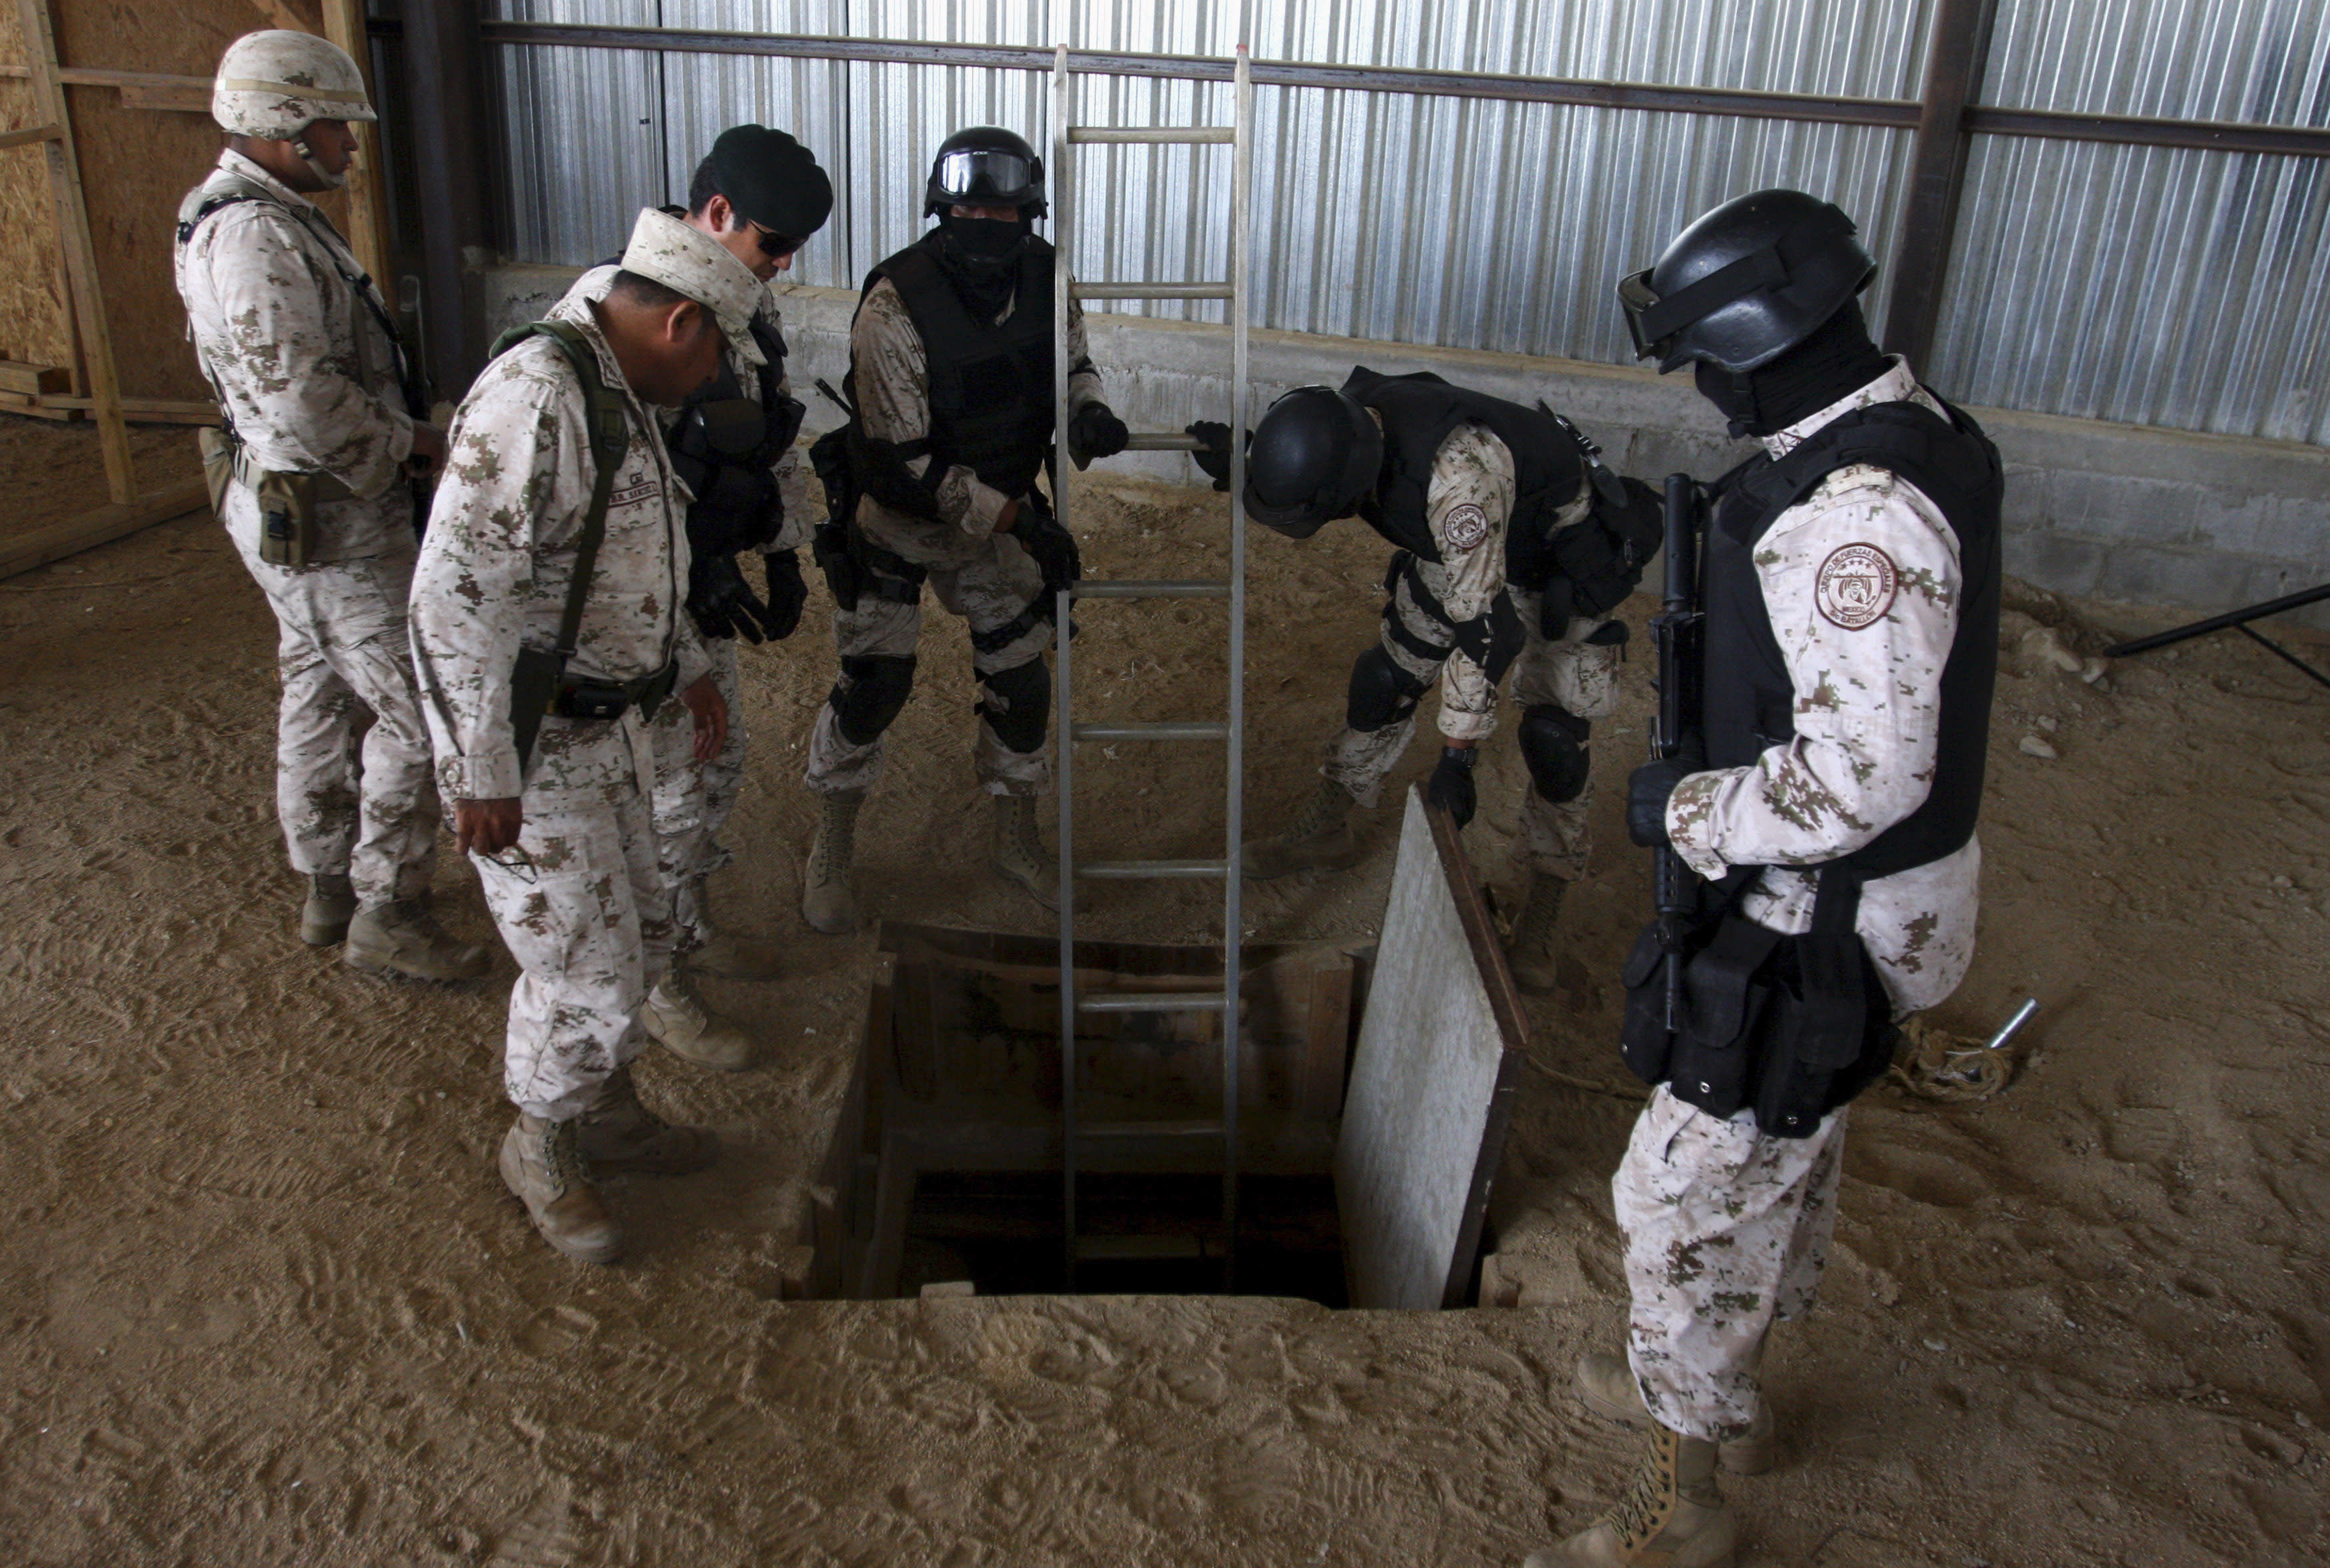 """Soldier prepare a ladder to enter a tunnel during a presentation to the media in Tijuana November 16, 2011. Police have discovered a """"major cross-border drug tunnel"""" running to California from Mexico, and seized 14 tons of marijuana, authorities said Wednesday. The tunnel links warehouses in an industrial park south of San Diego and the Mexican border city of Tijuana, the U.S. Immigration and Customs Enforcement agency said in a news release. REUTERS/Jorge Duenes (MEXICO - Tags: CRIME LAW DRUGS SOCIETY MILITARY)"""